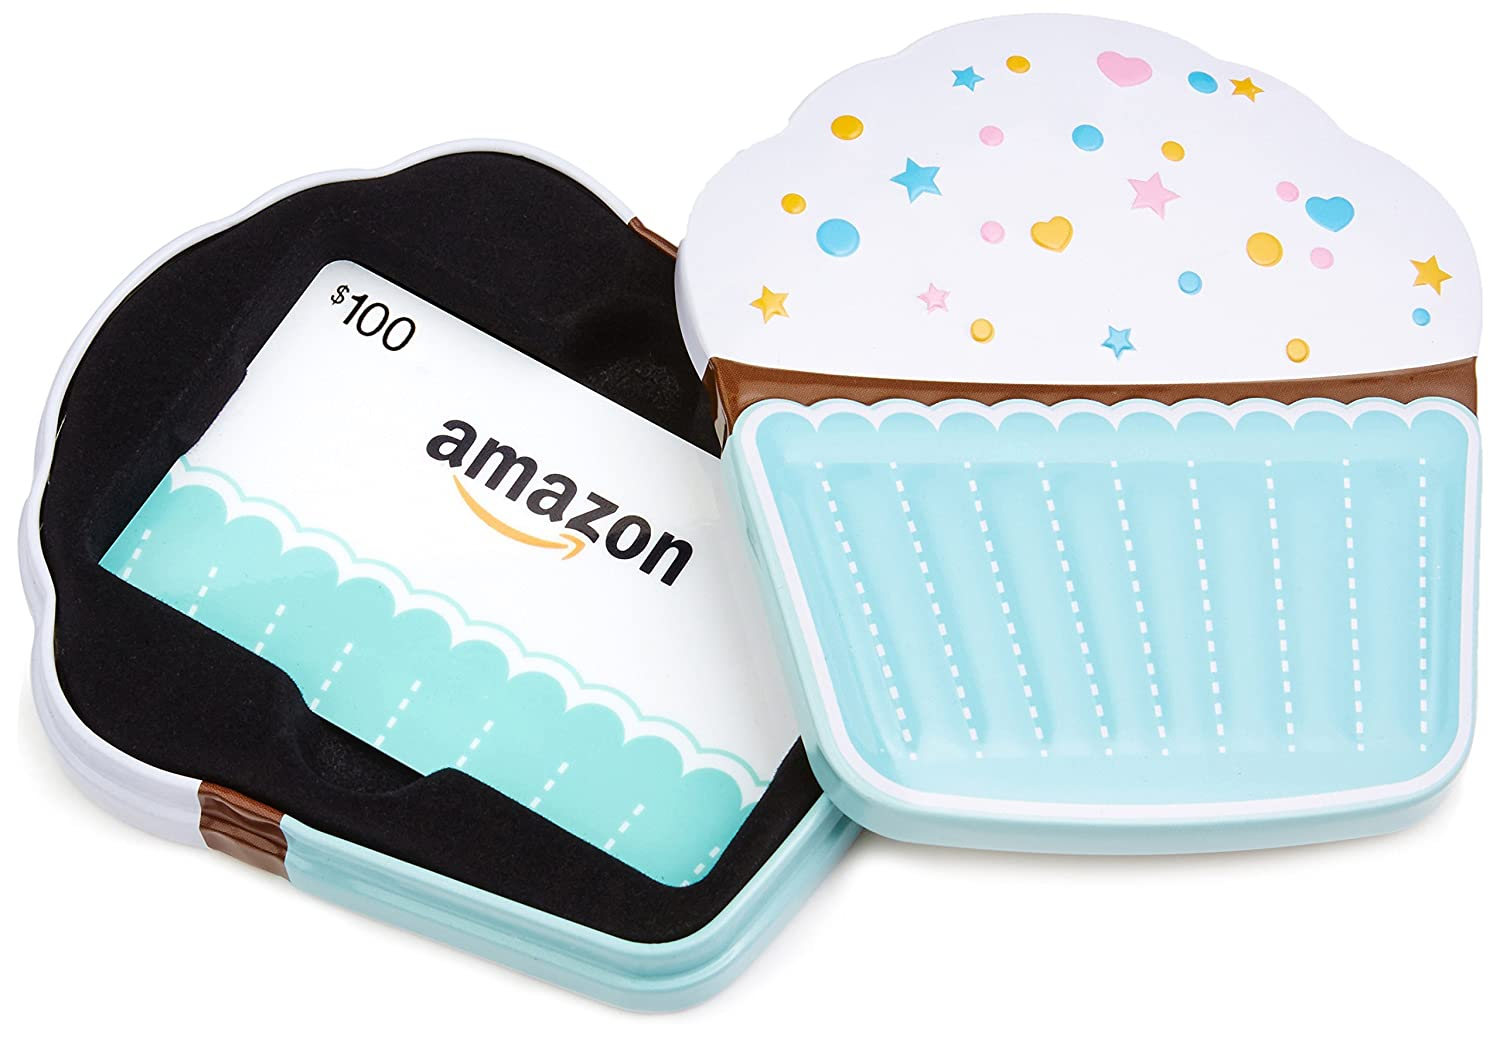 Amazon.ca Gift Card in a Birthday Cupcake Tin (Birthday Cupcake Card Design) Amazon.com.ca Inc. VariableDenomination